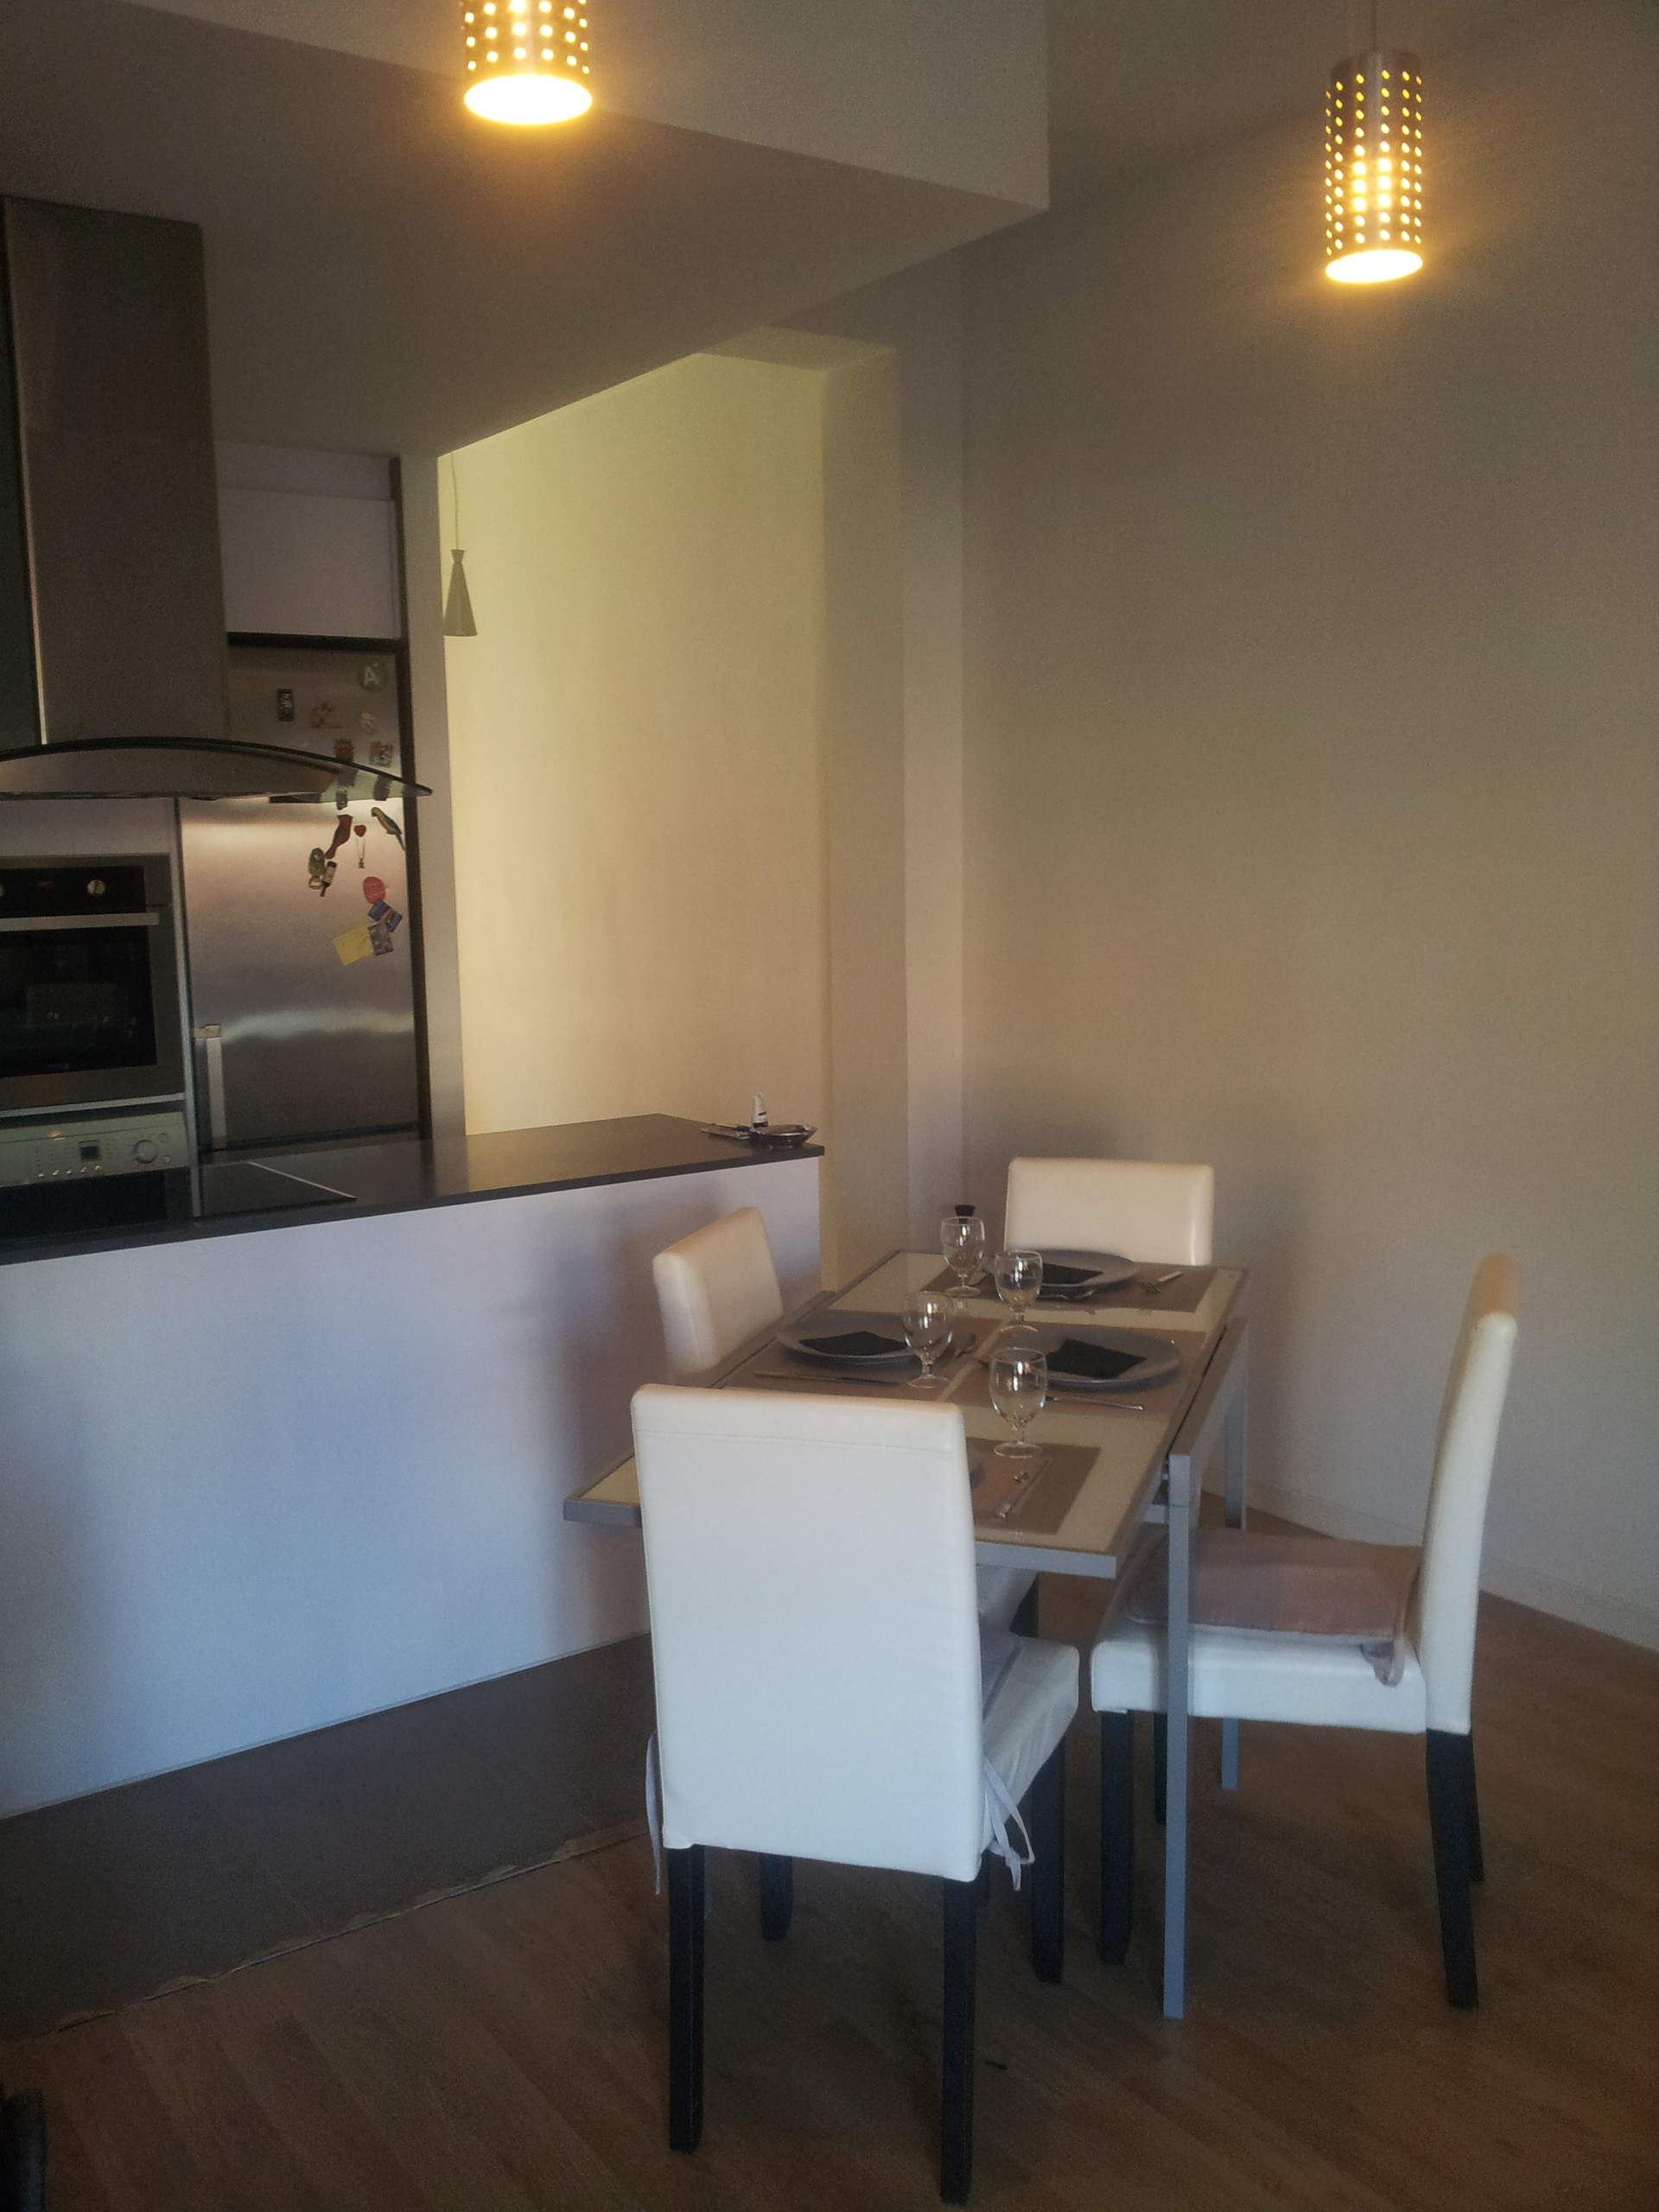 A Fully Furnished An Equipped Apartment In Valencia Spain